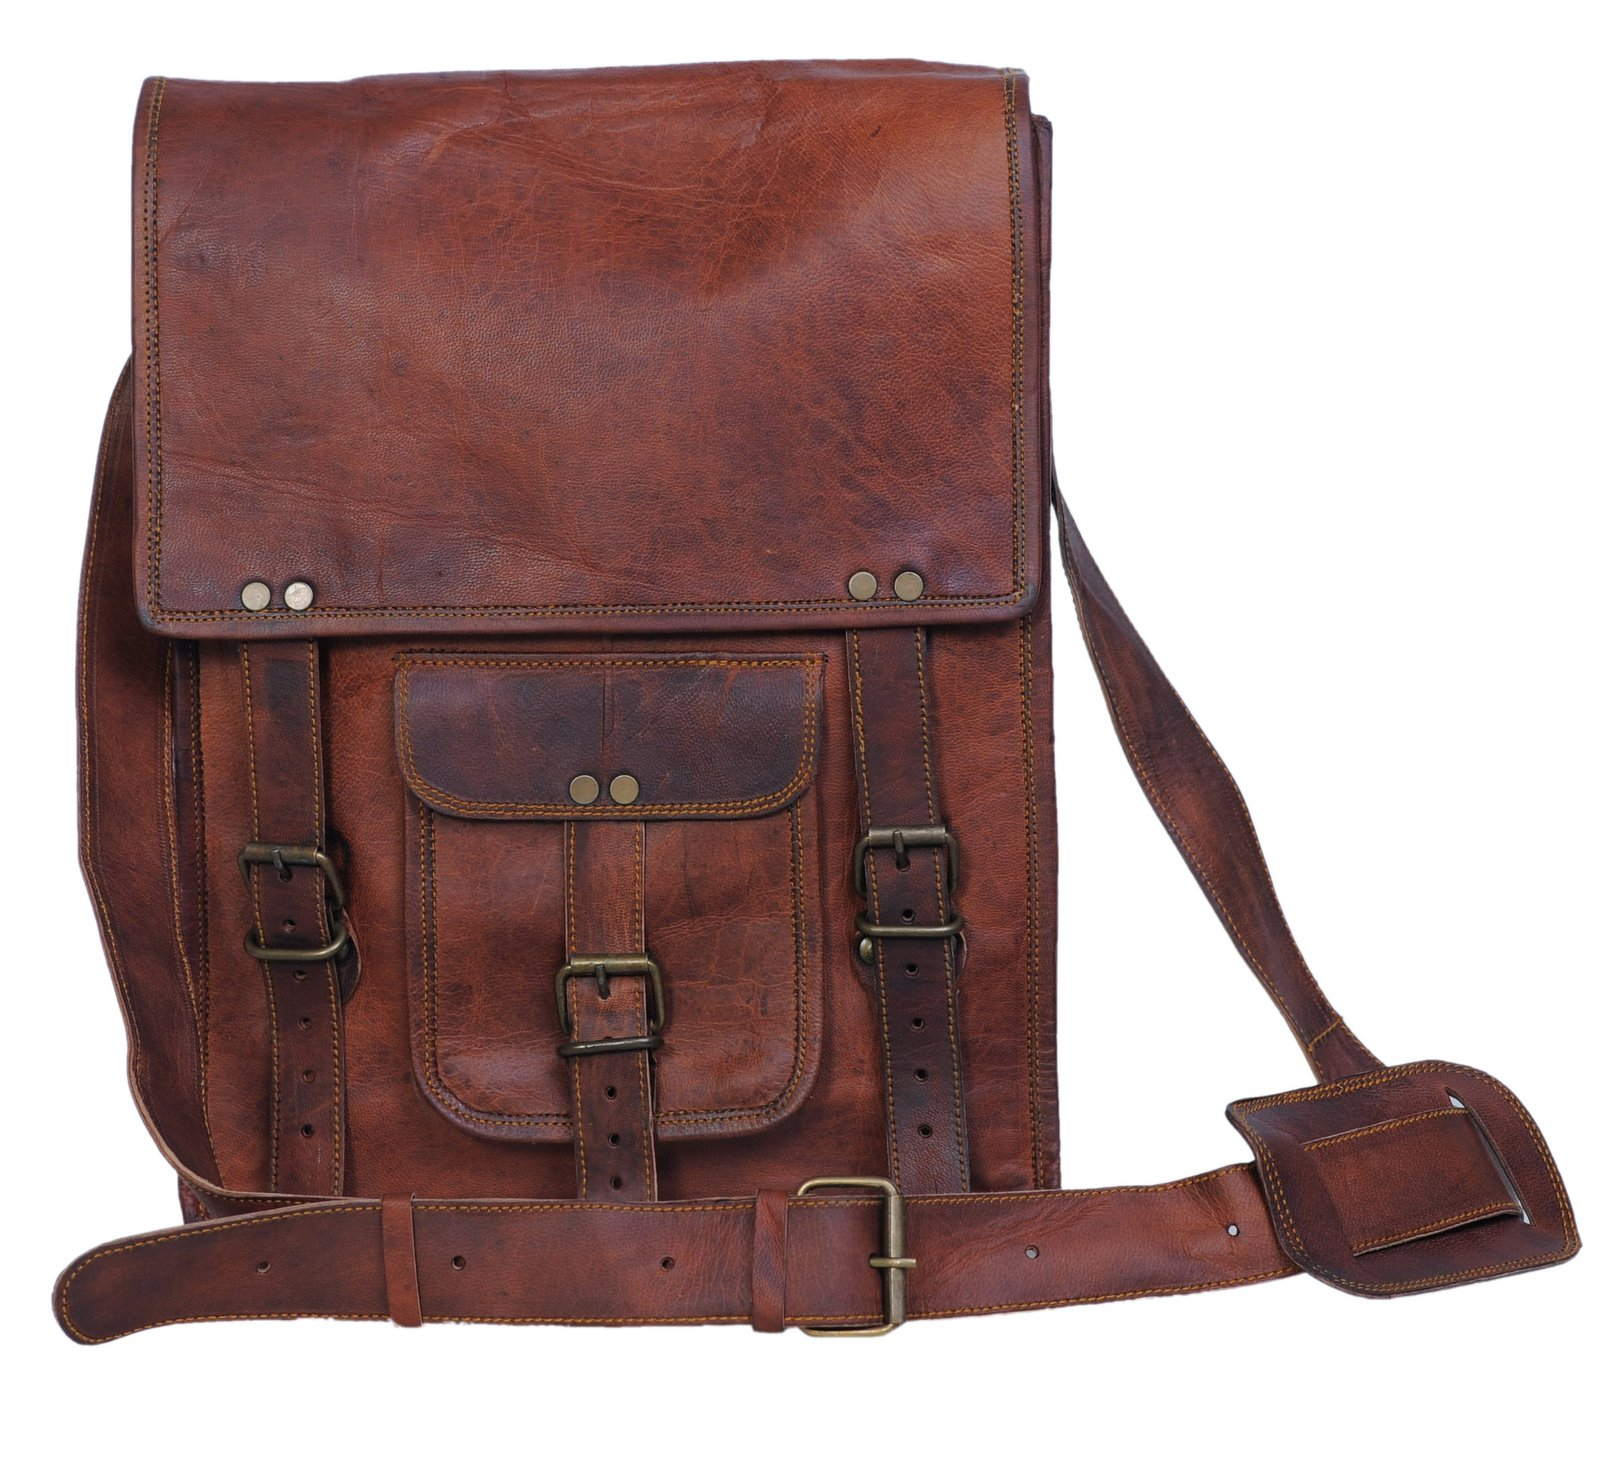 6c146e171f64 Komal s Passion Leather 11 Inch Sturdy Leather Ipad Messenger Satchel Bag